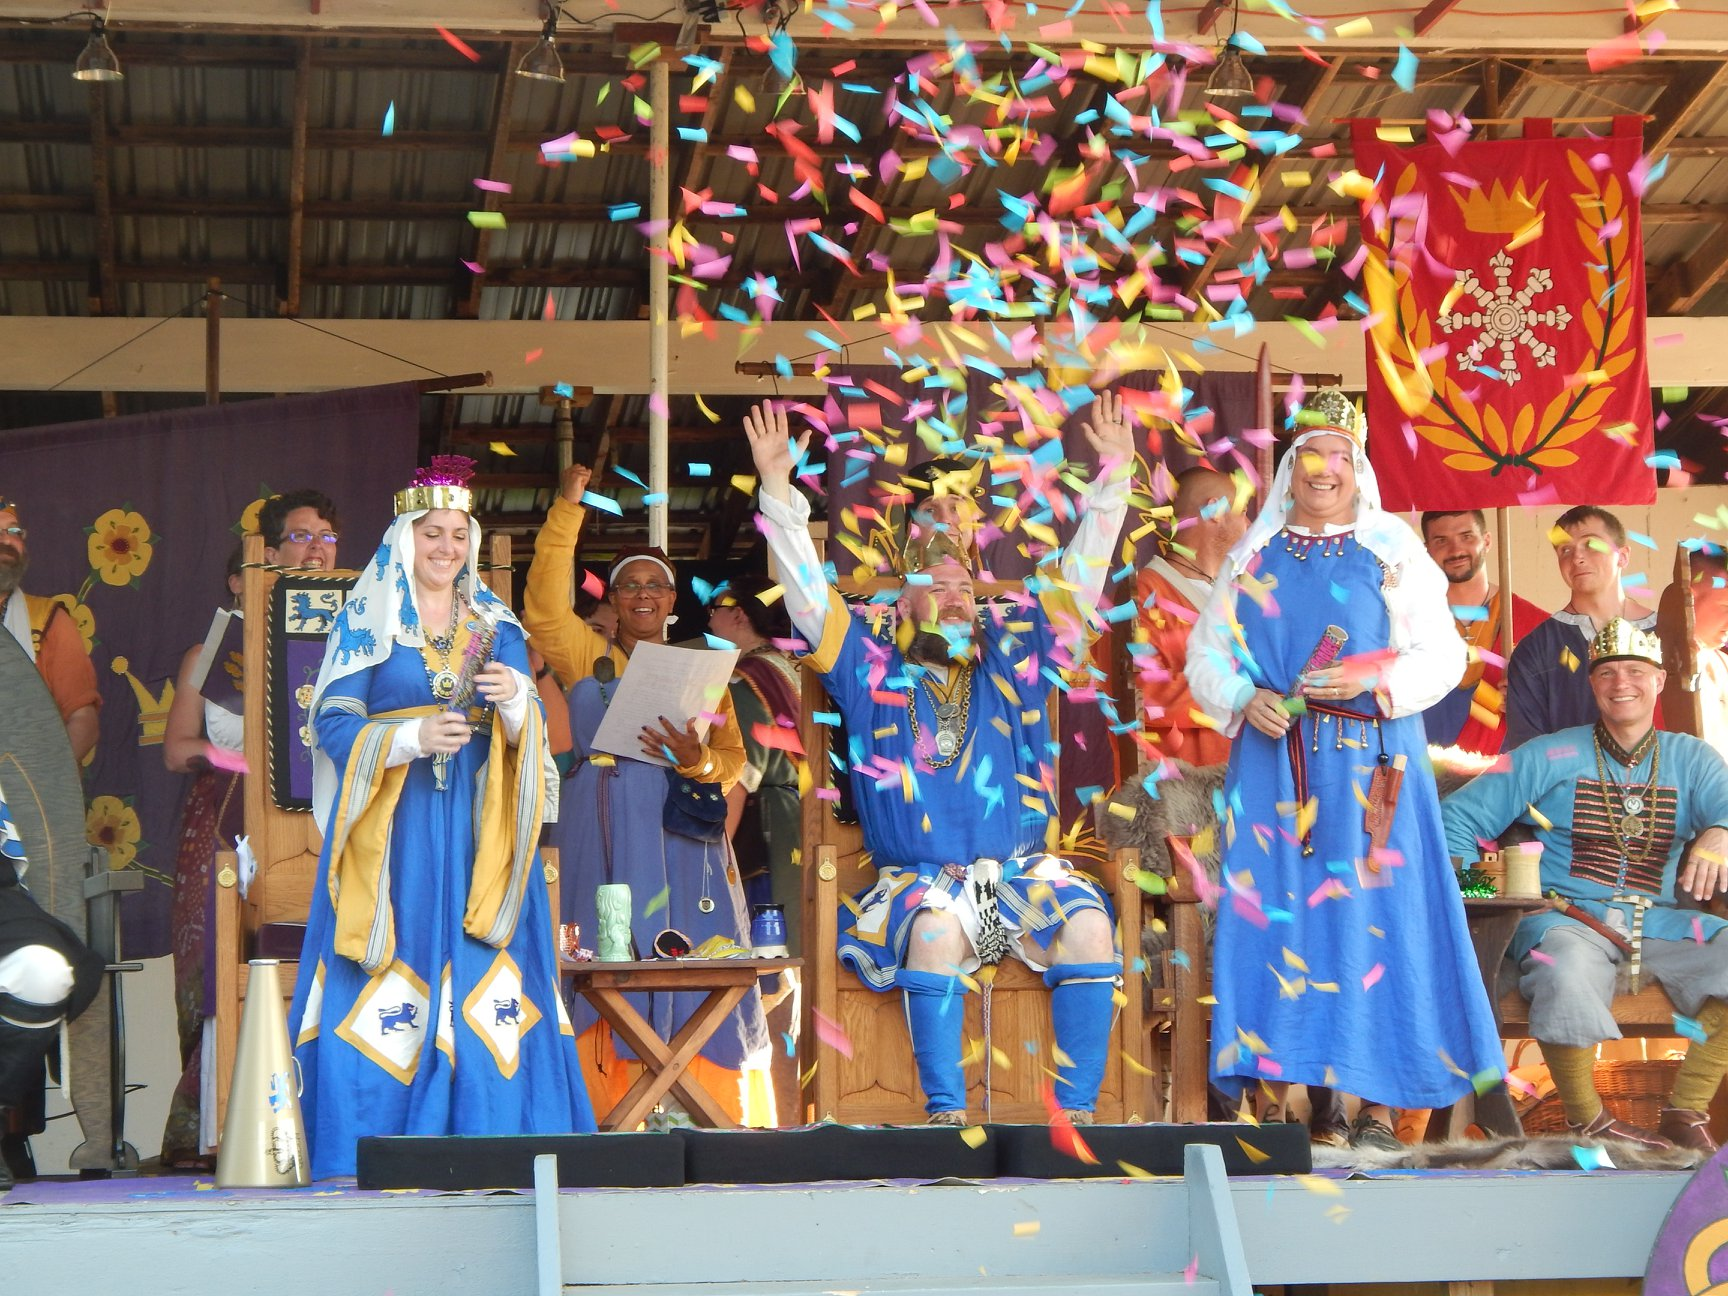 Royals throwing confetti at Pennsic 2018